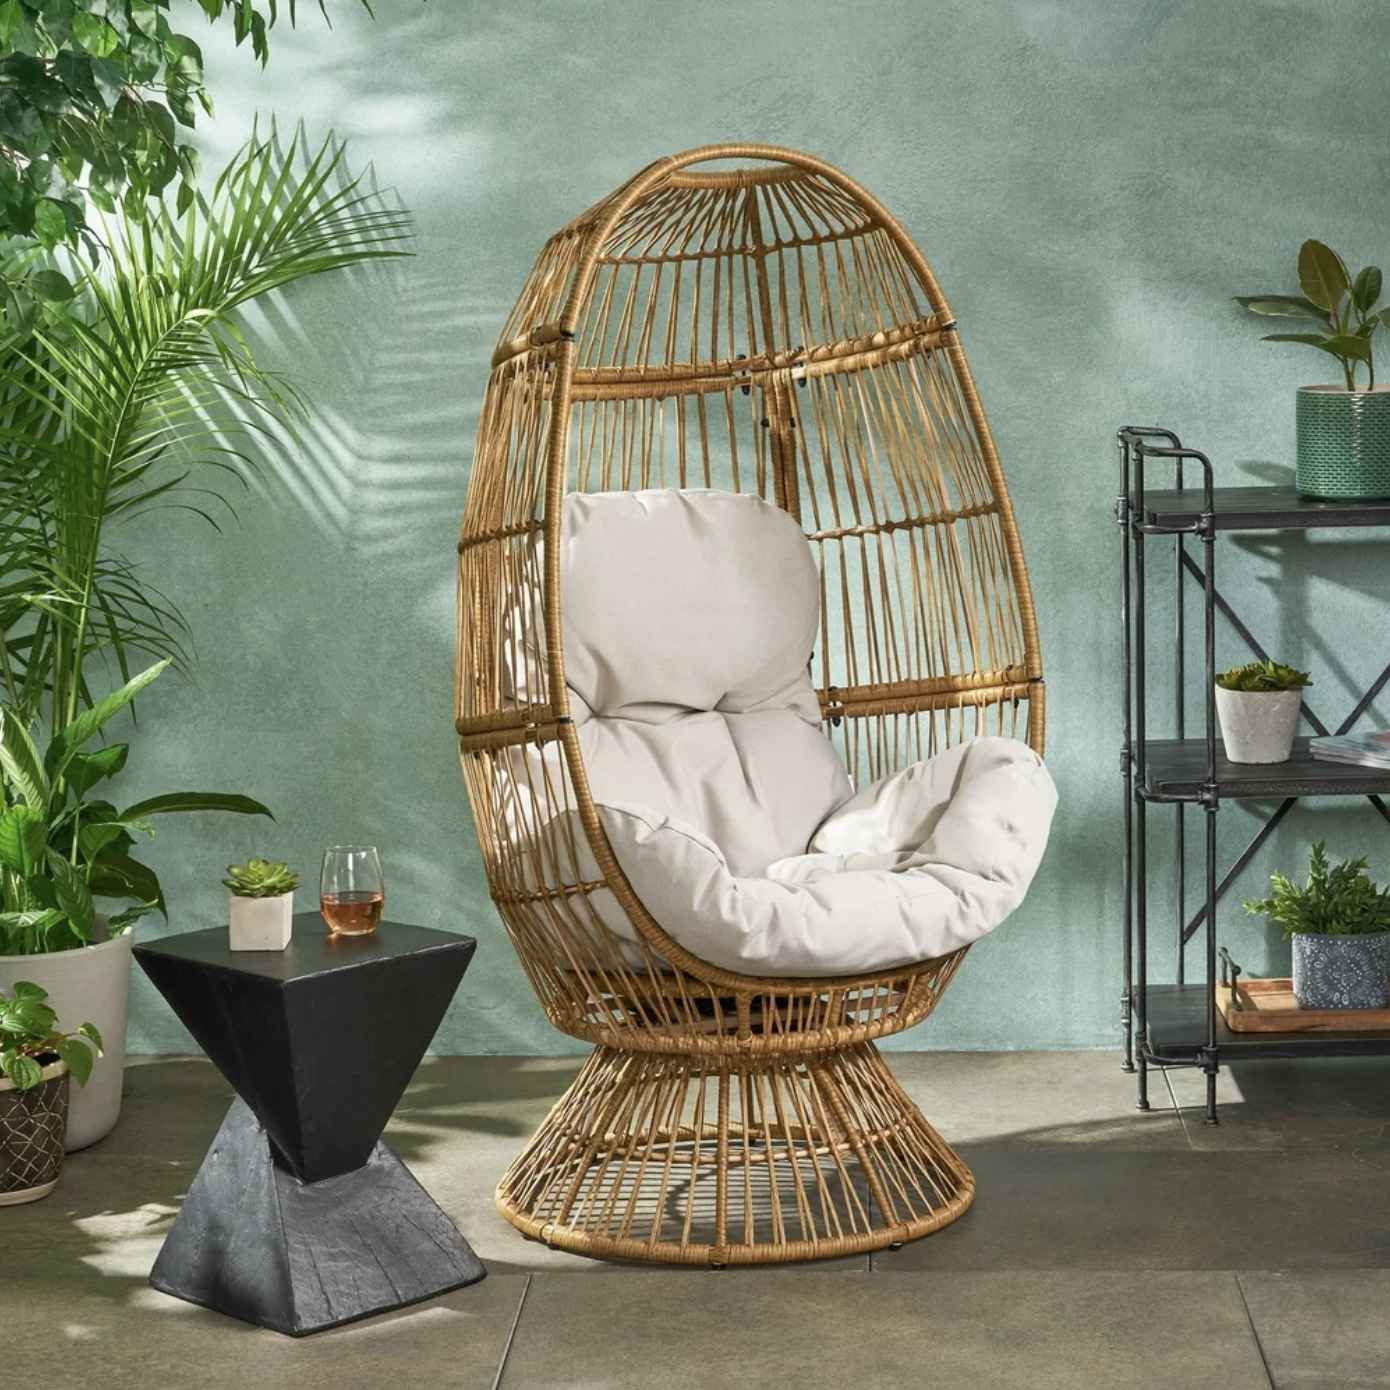 Target Southport Patio Egg Chair, Target Southport Patio Egg Chair dupes, affordable dupes for the Target Southport Patio Egg Chair, egg chair inspiration, egg chair home ideas, egg chairs, wicker egg chairs, hanging egg chairs, interior, home decor, home interior, interior styling, target dupes, patio furniture, patio furniture inspiration, Jennifer Worman, Red Soles and Red Wine, Pintan Outdoor Wicker Swivel Egg Chair Overstock